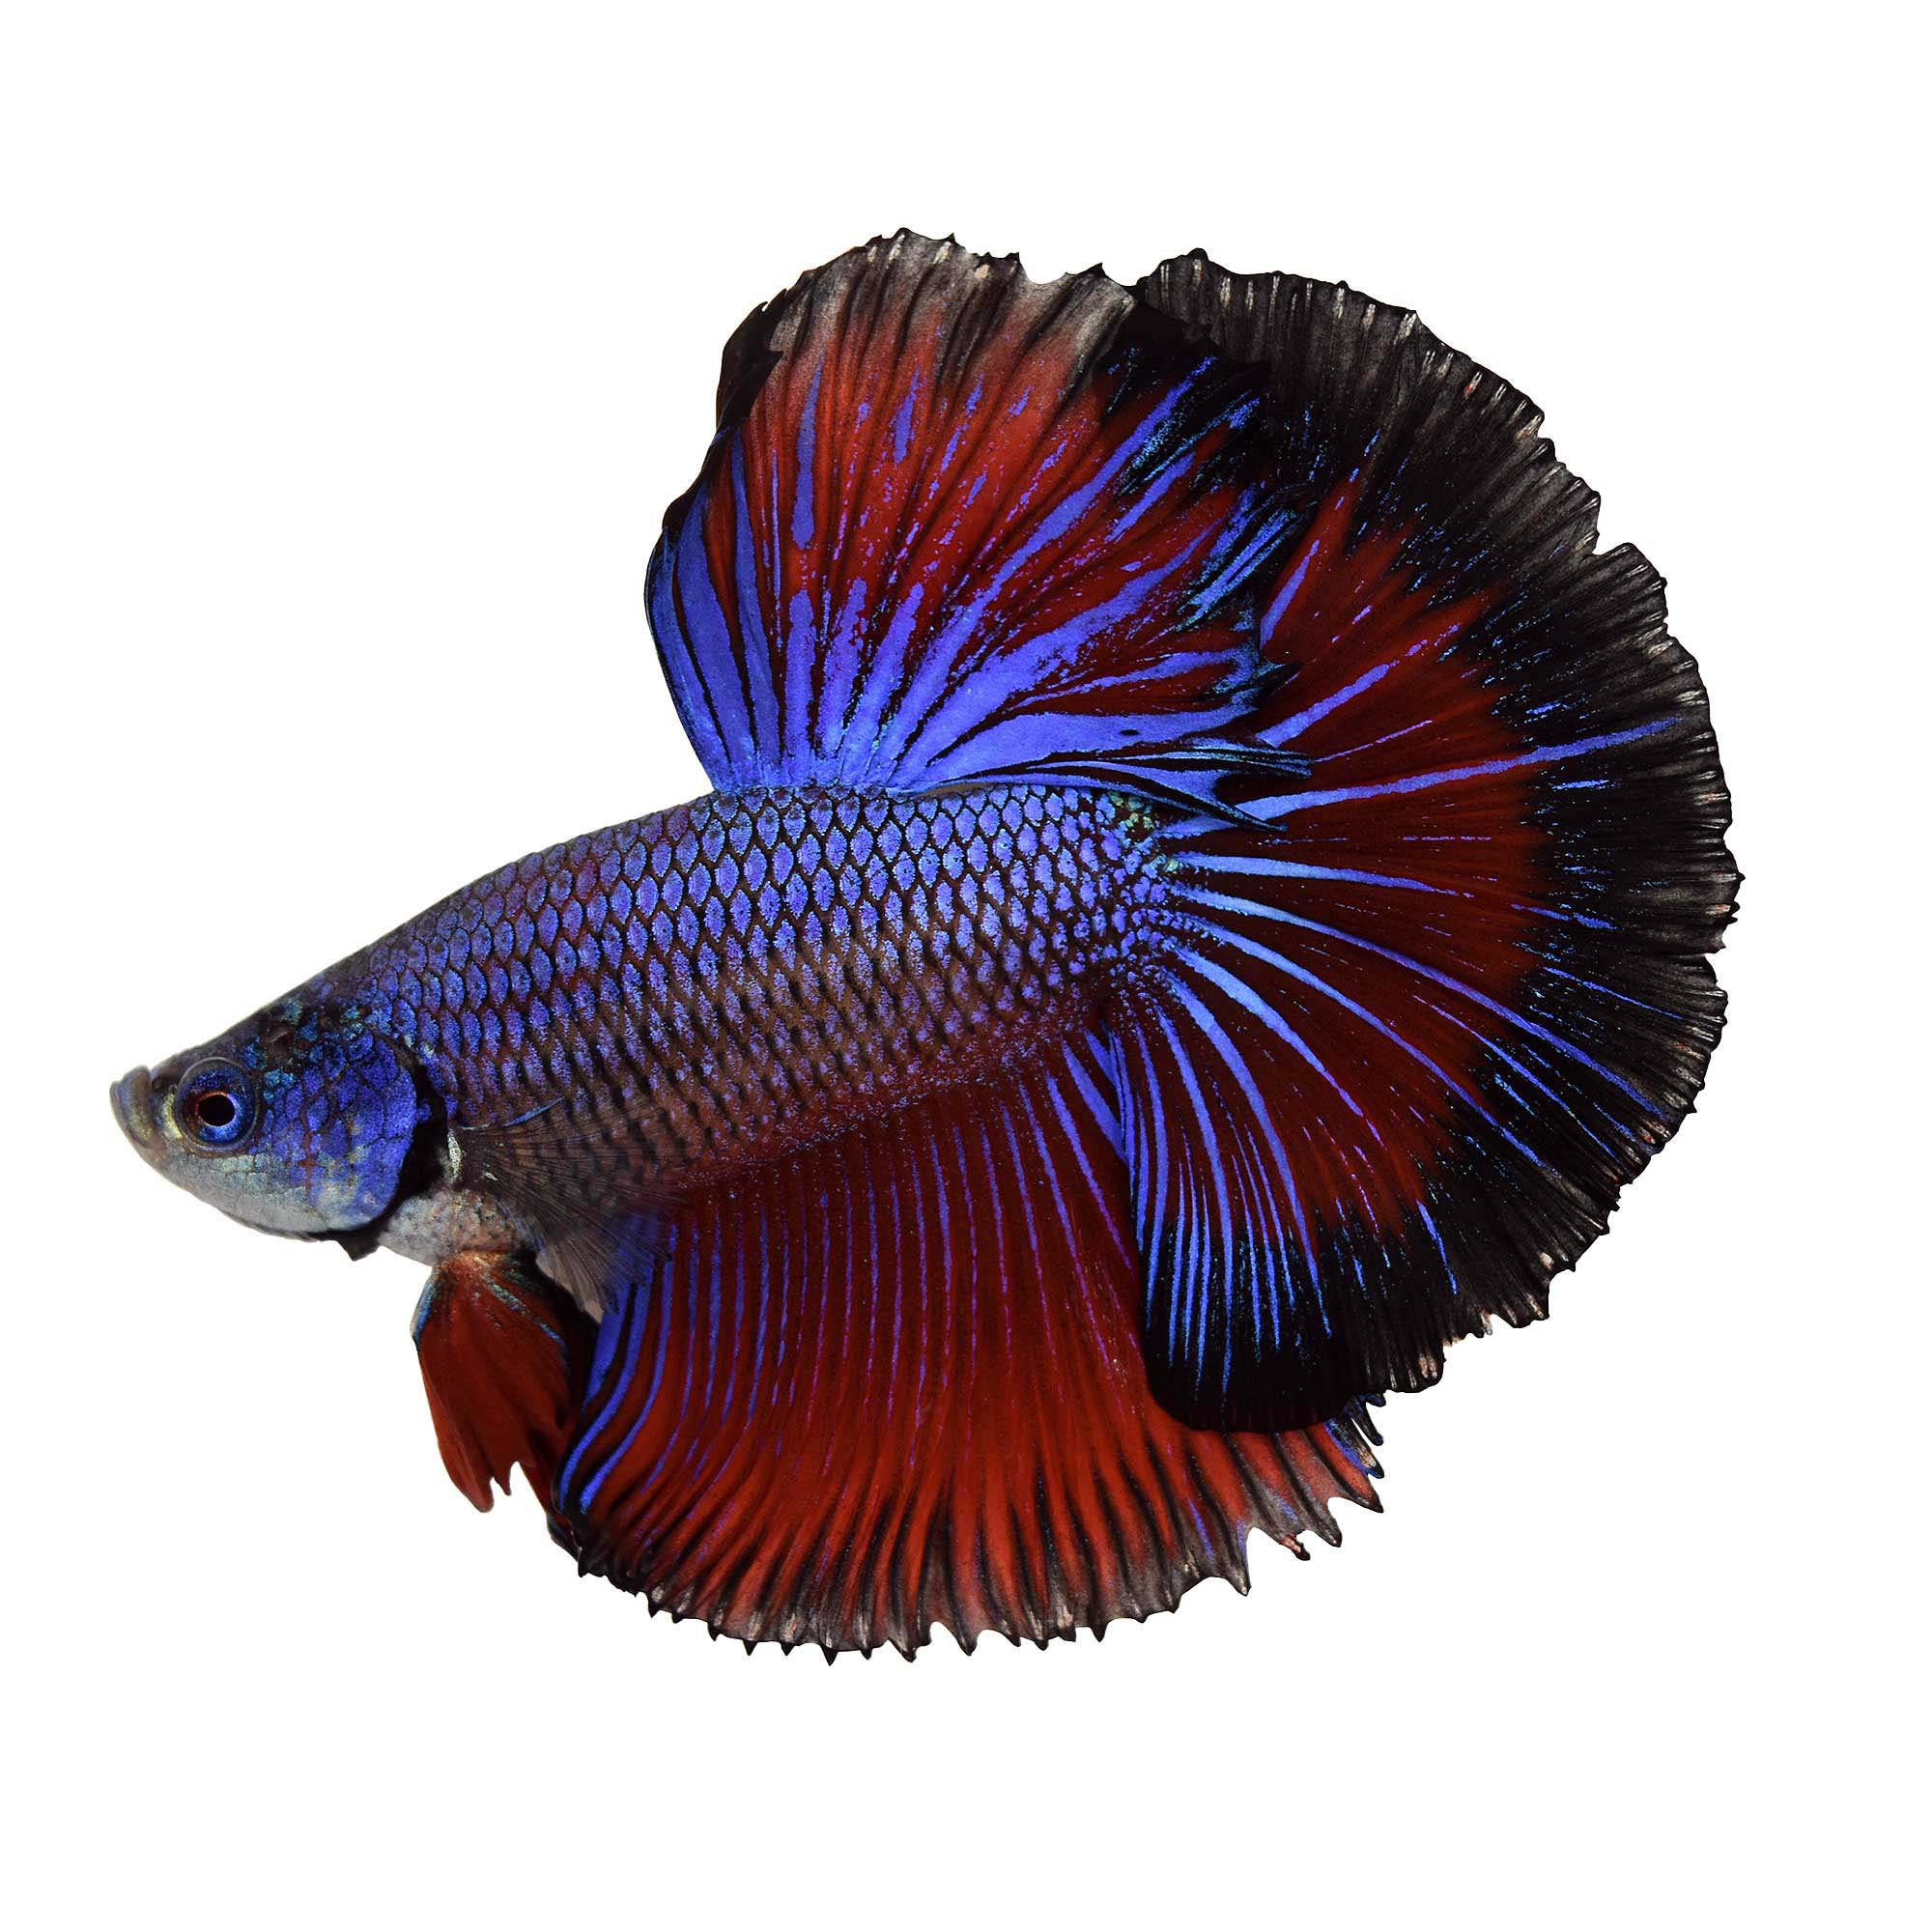 Male halfmoon betta fish siamese fighting fish extra for Types of betta fish petco